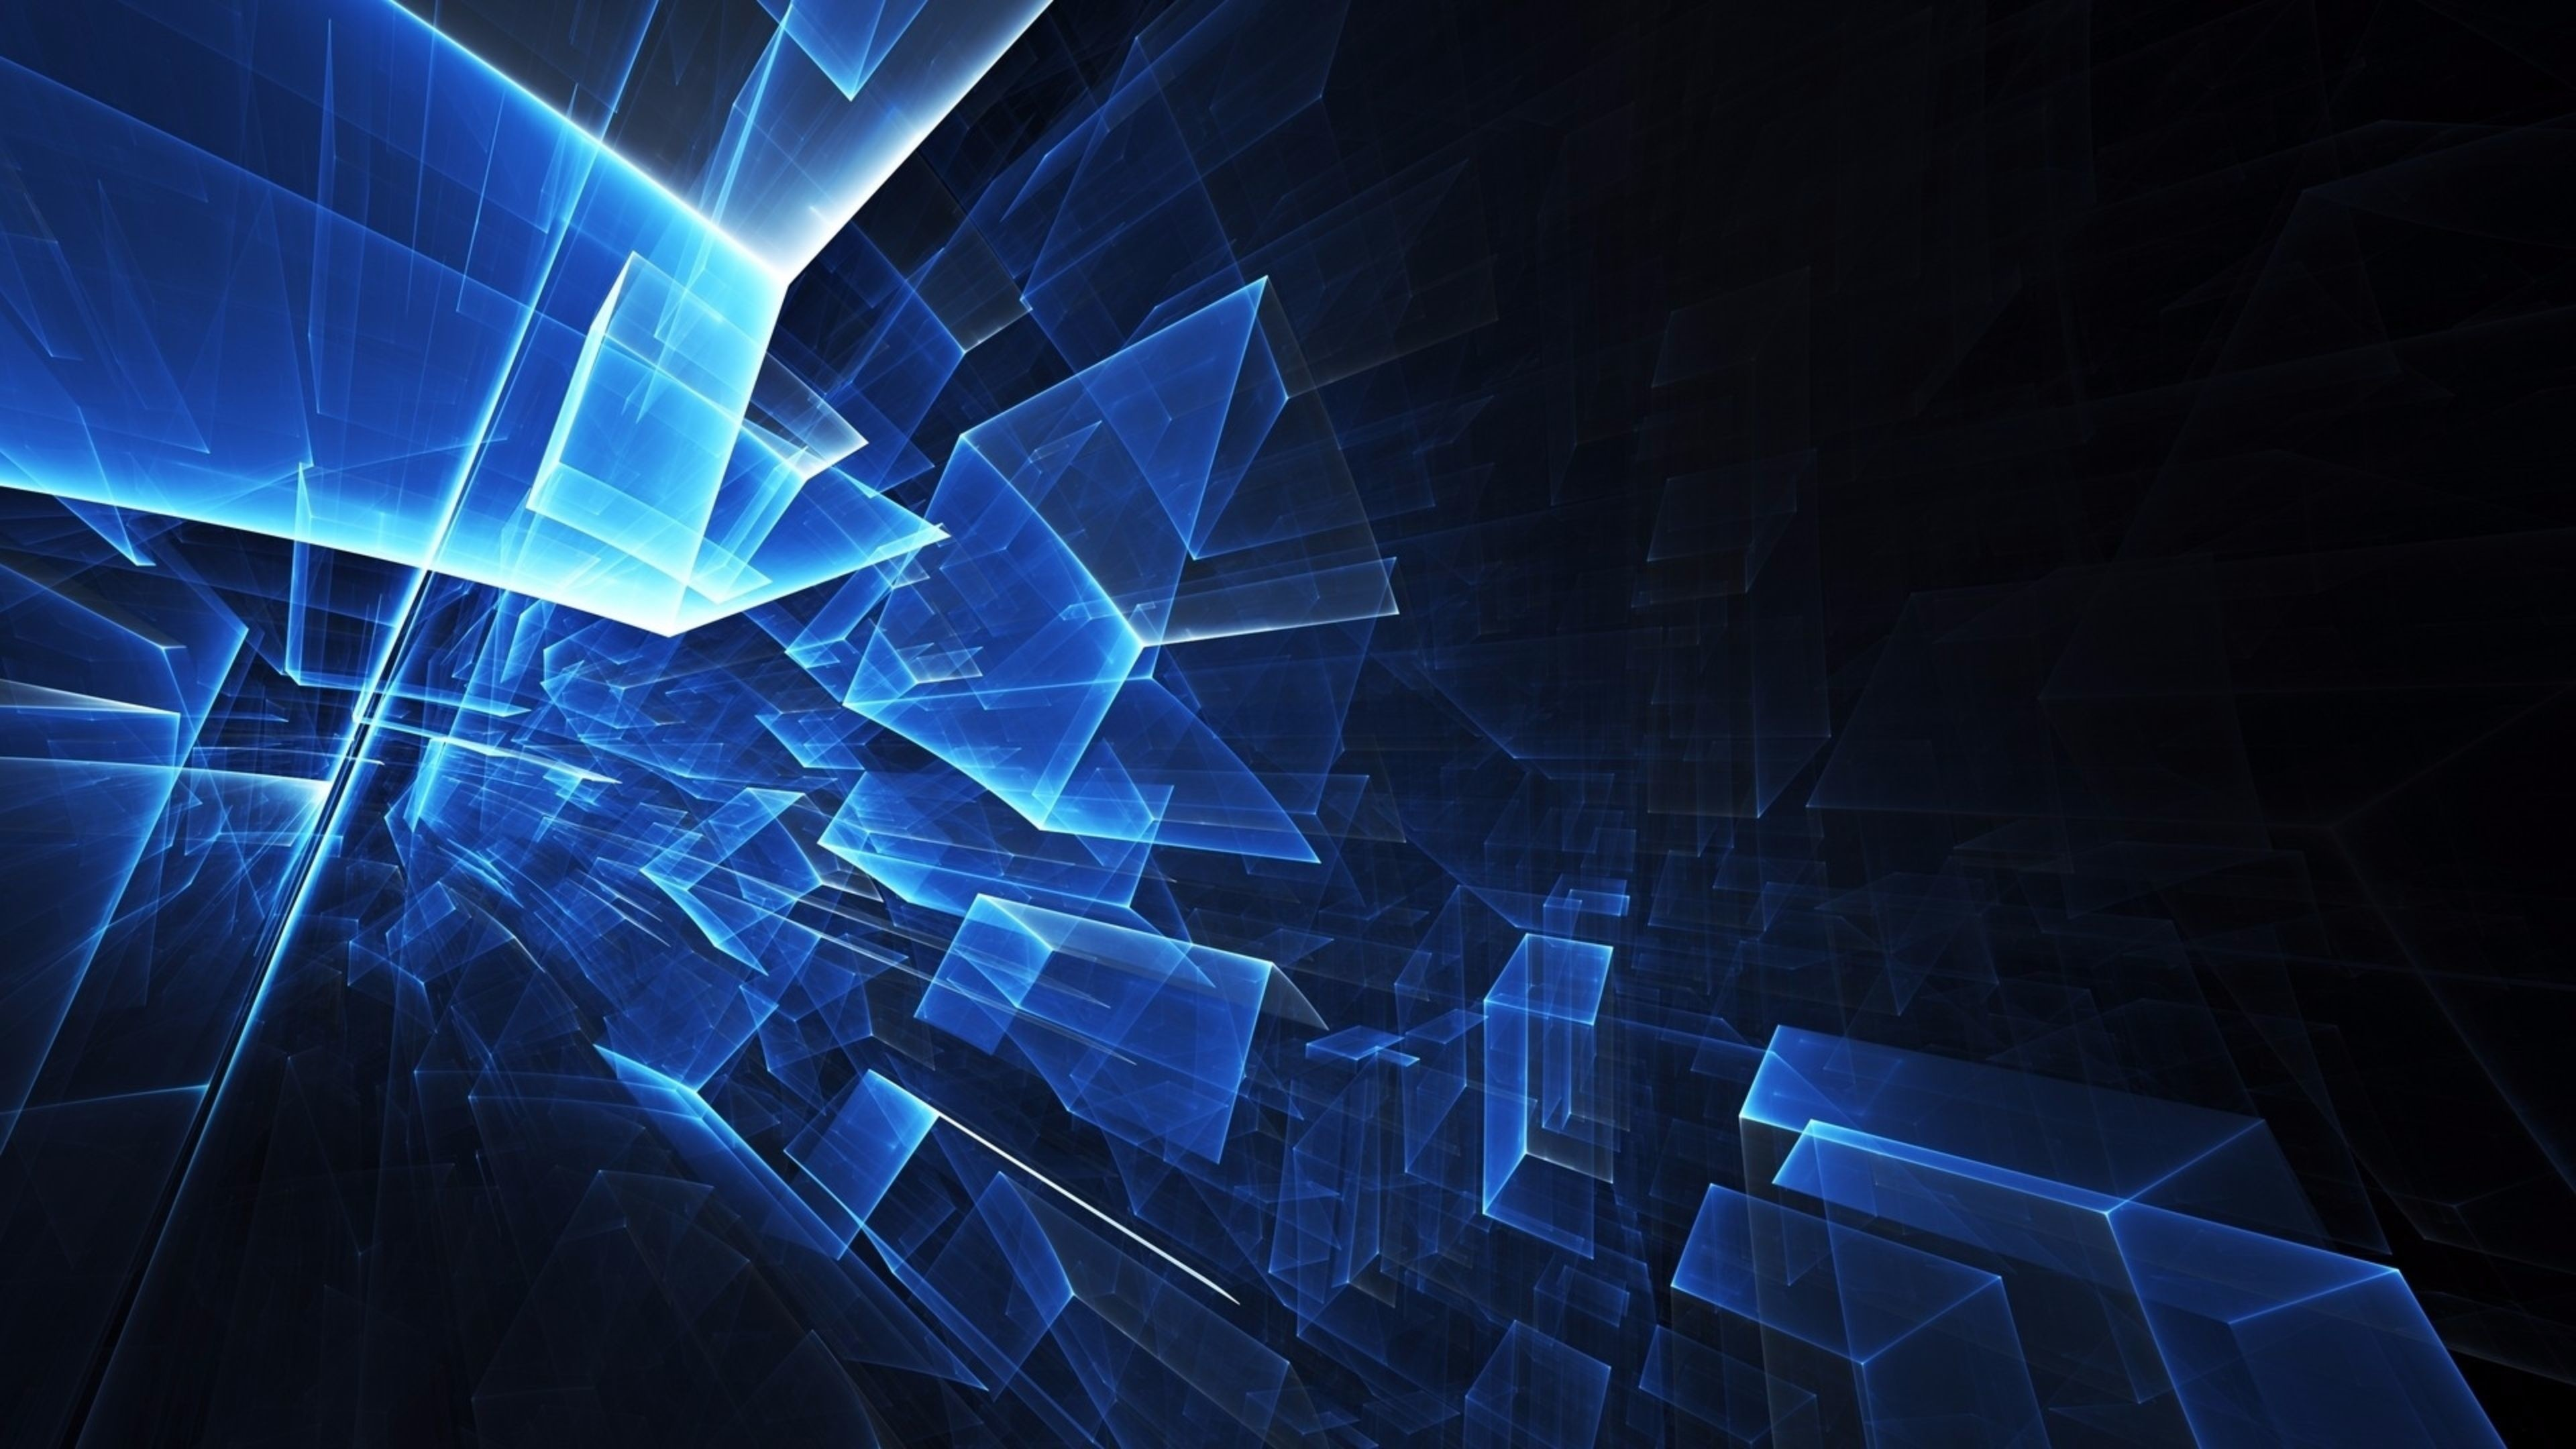 3840x2160 ... Wallpapers 4k Abstract Wallpaper Blue Cubes 4K | Free Computer  Backgrounds abstract wallpaper ...